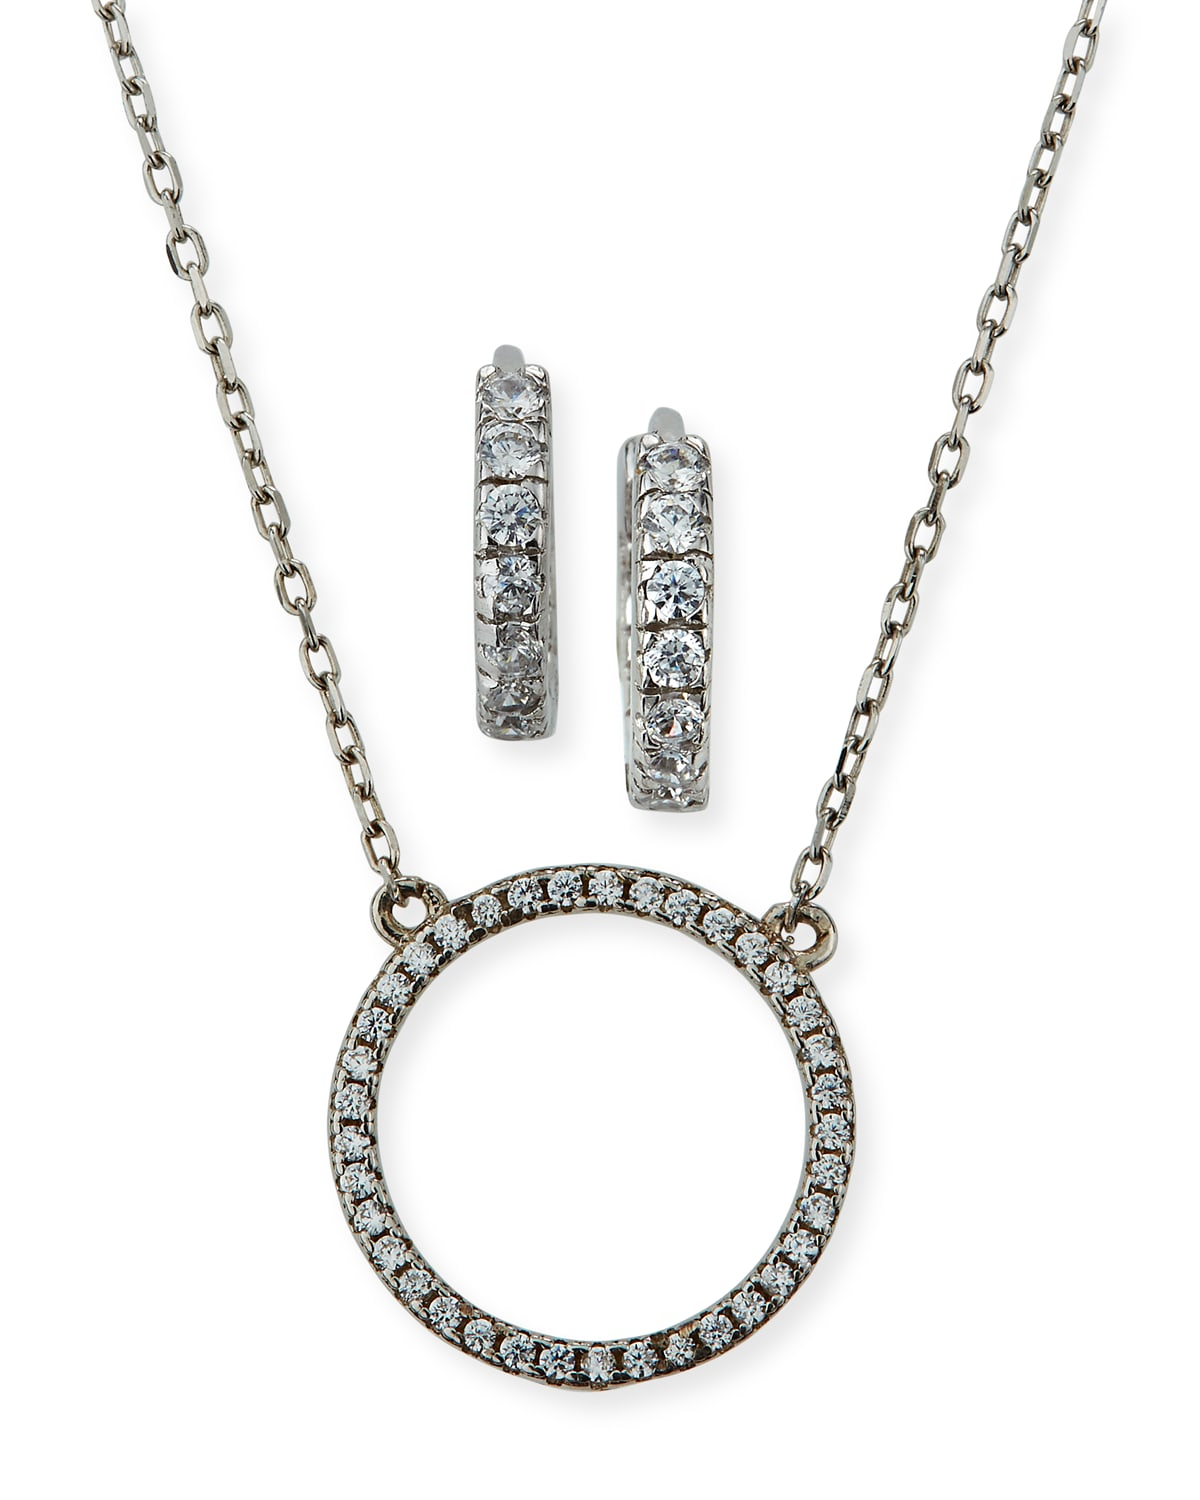 Girl's Sterling Silver Cubic Zirconia Circle Necklace w/ Matching Hoop Earrings Set